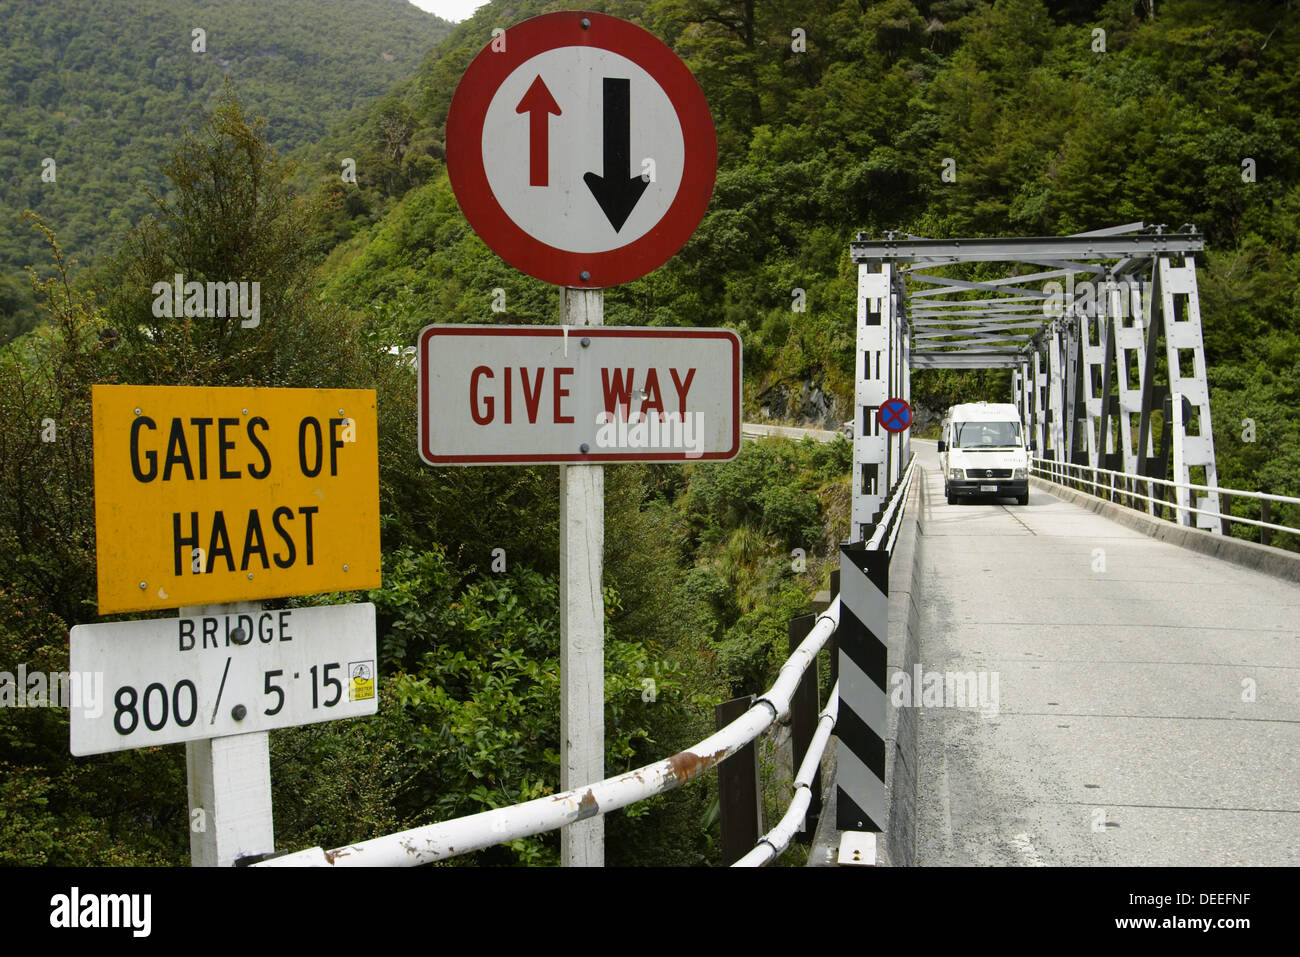 Caravan on one-lane bridge over Gates of Haast, right of way sign, yield. Haast Pass. New Zealand Stock Photo